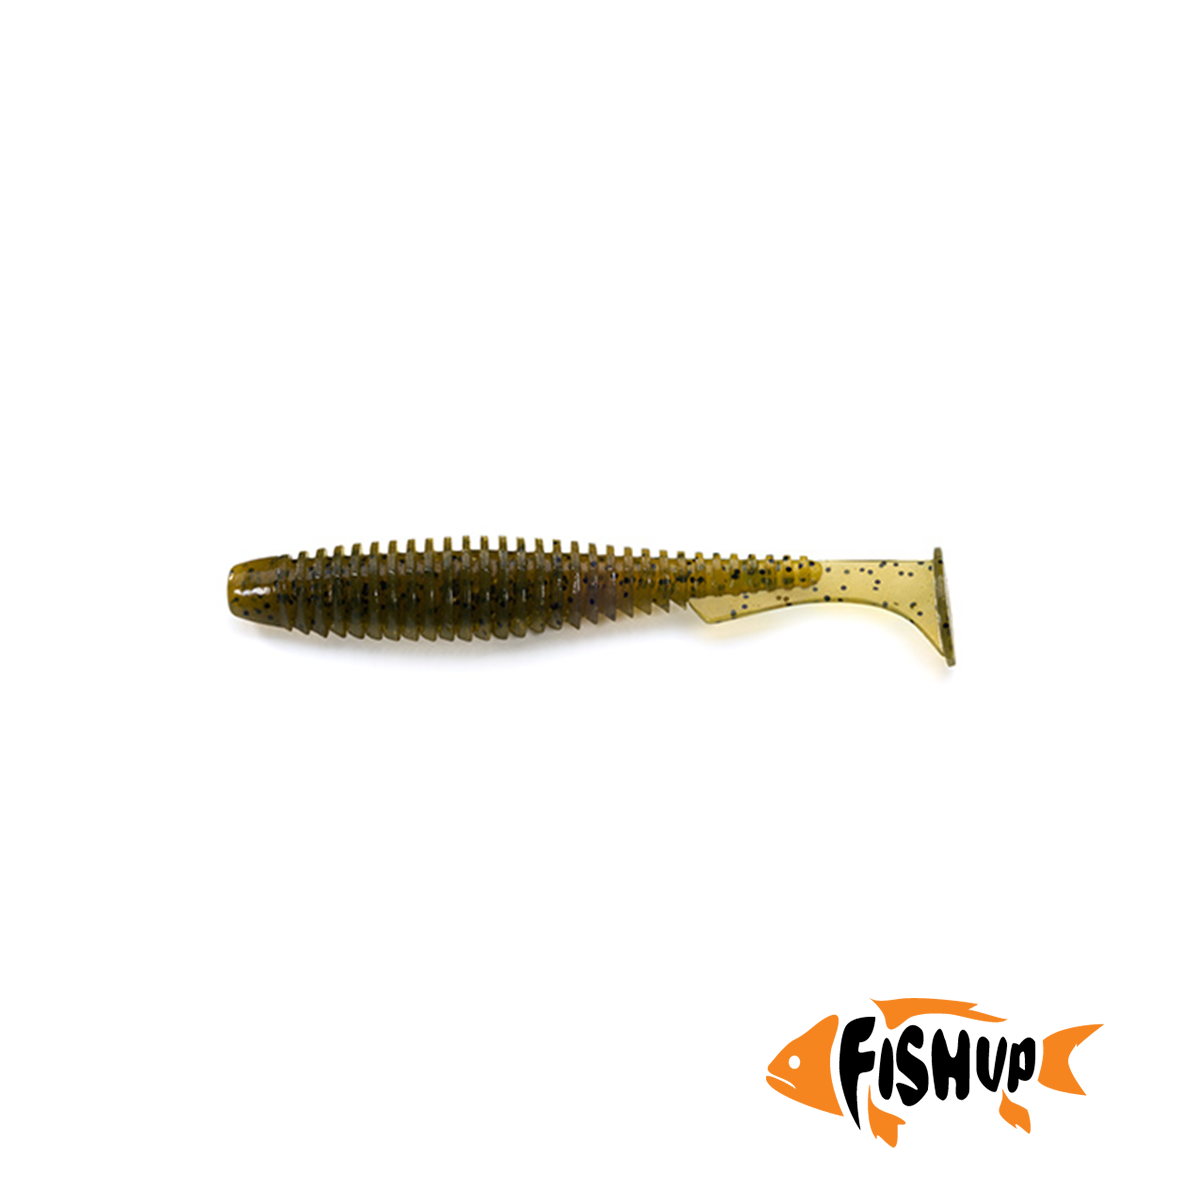 "U-Shad 4"" (8шт), #074 - Green Pumpkin Seed"